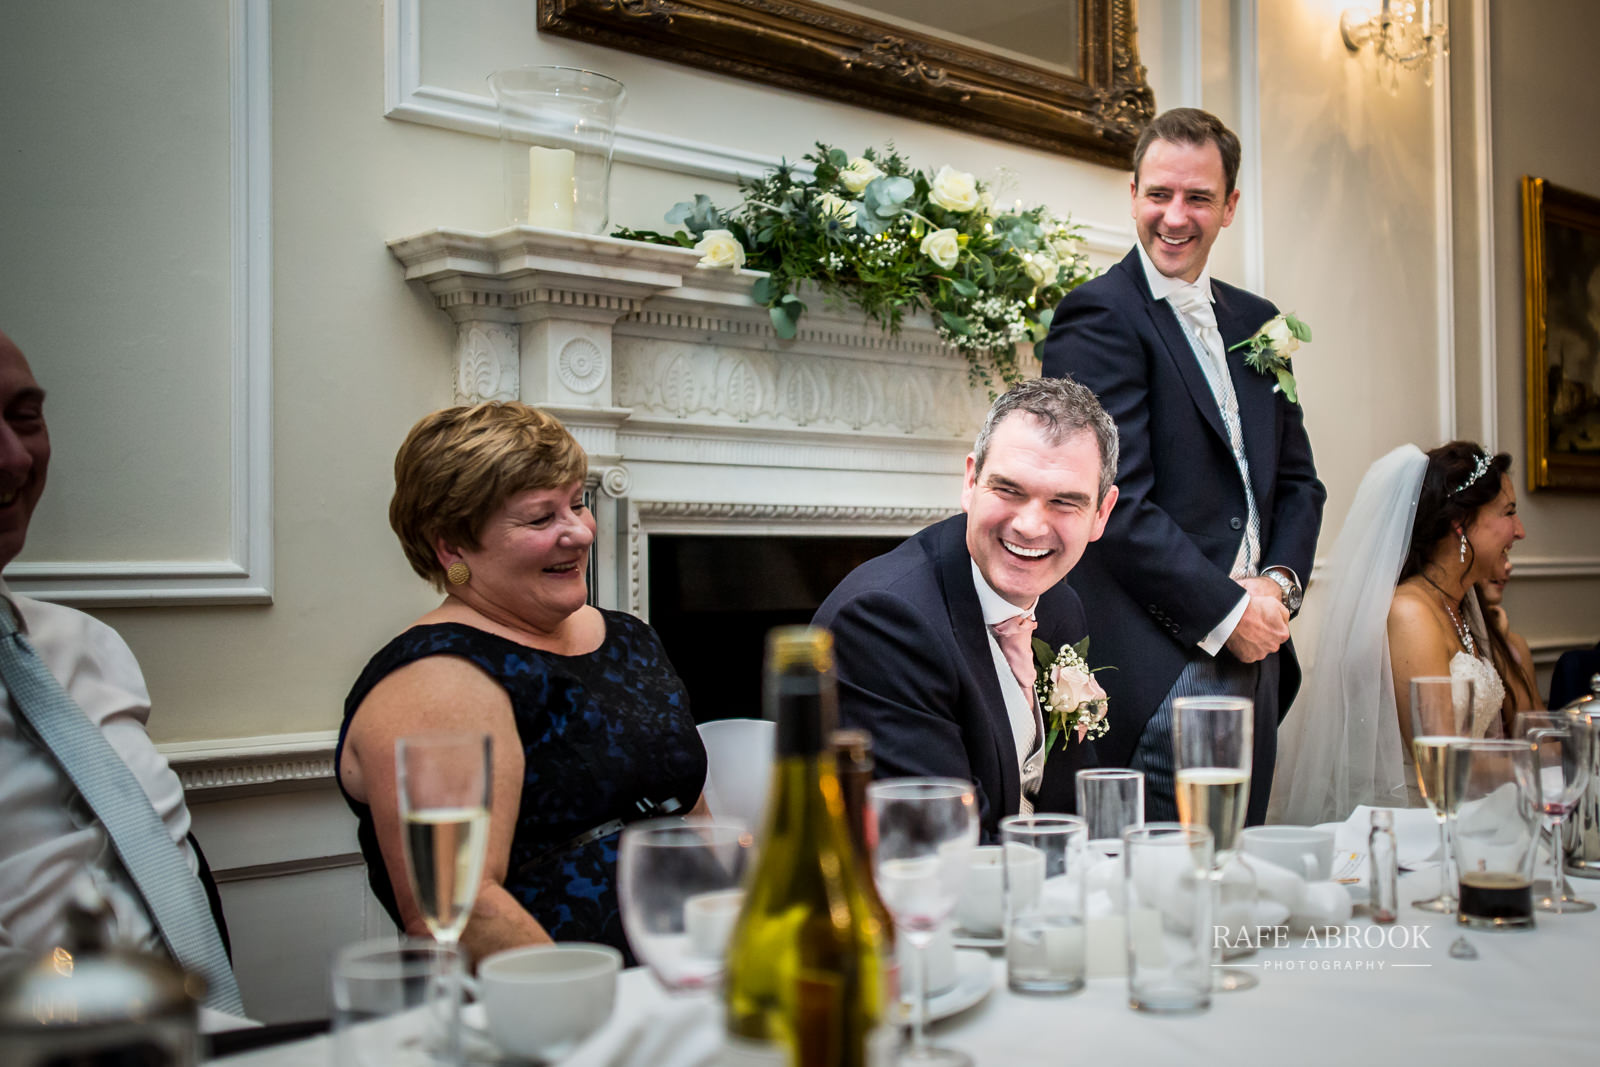 goldsborough hall wedding harrogate knaresborough yorkshire hertfordshire wedding photographer-1372.jpg